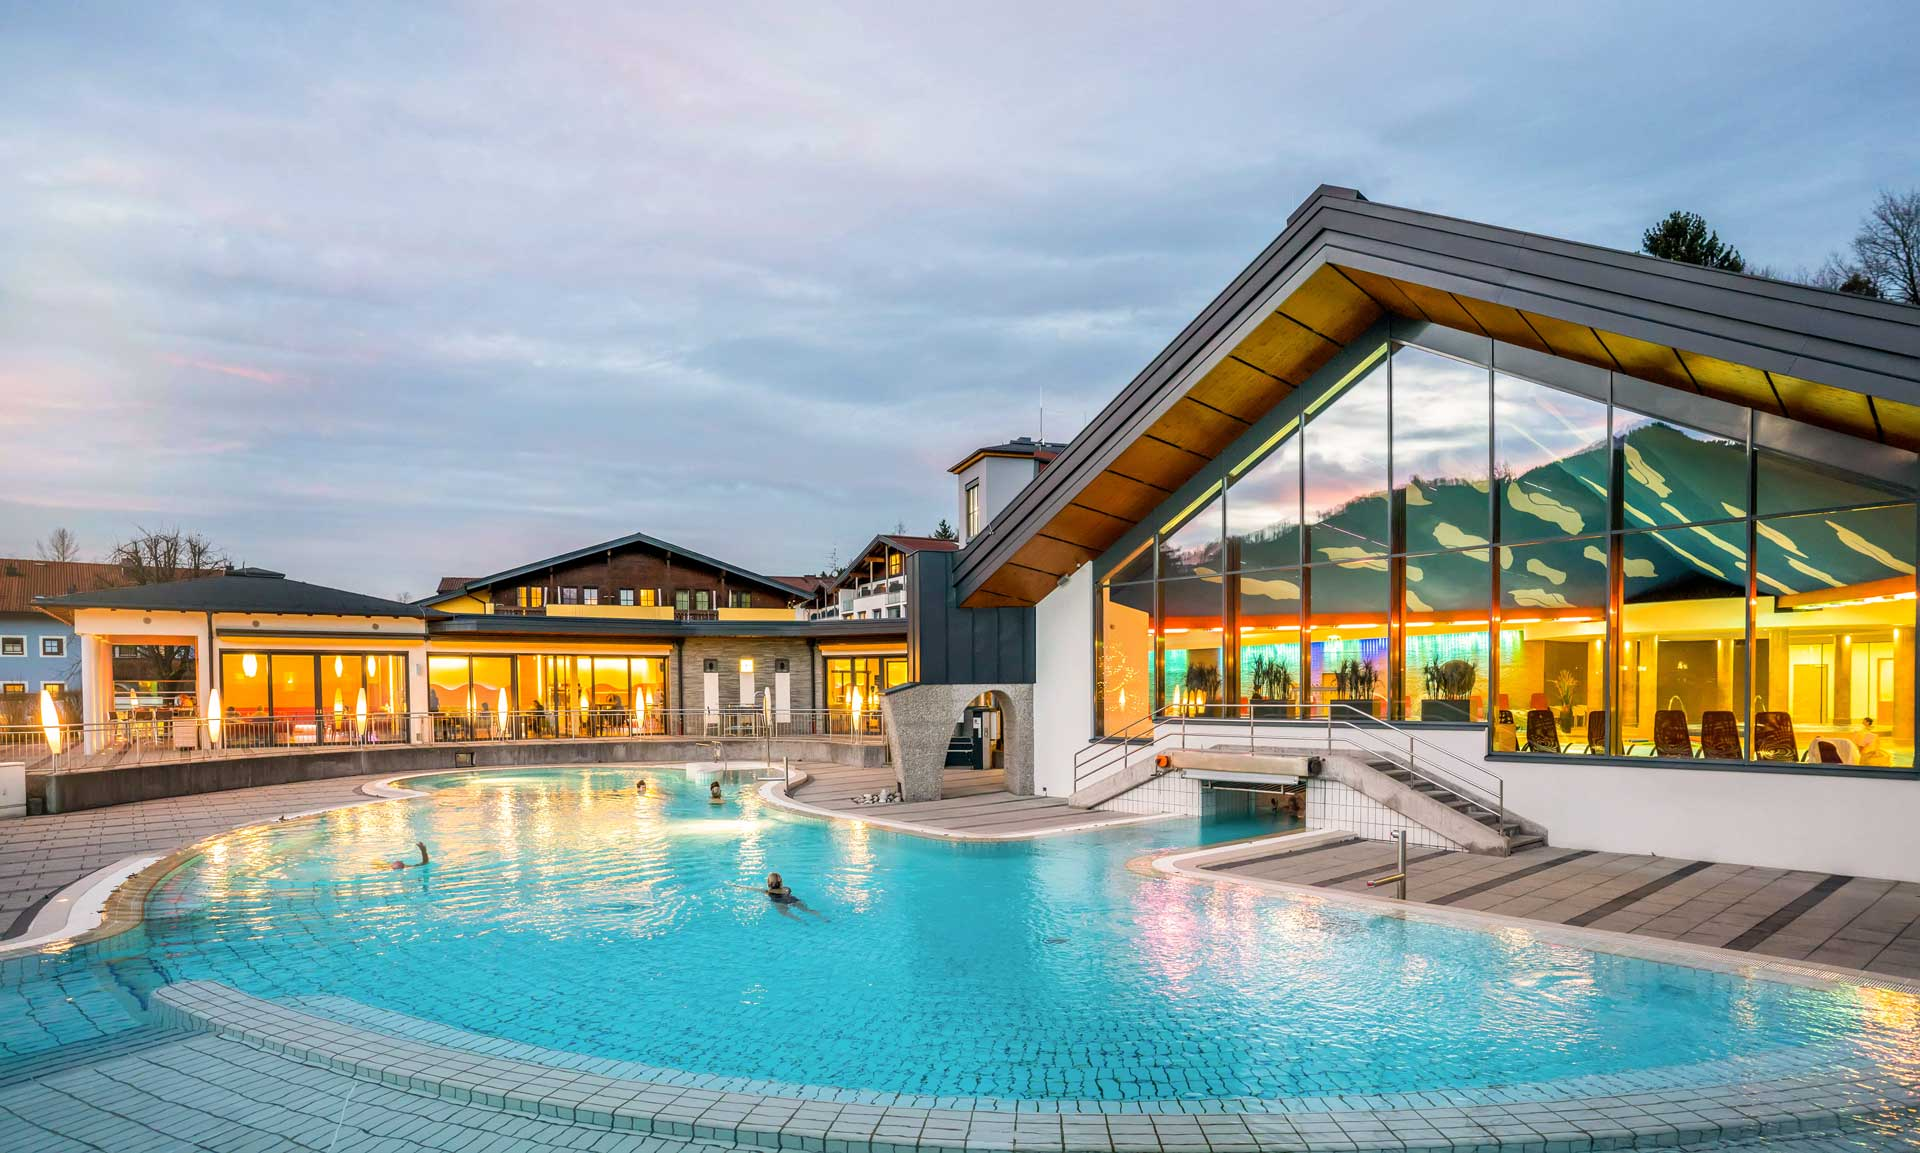 Heil-Therme in Bad Vigaun